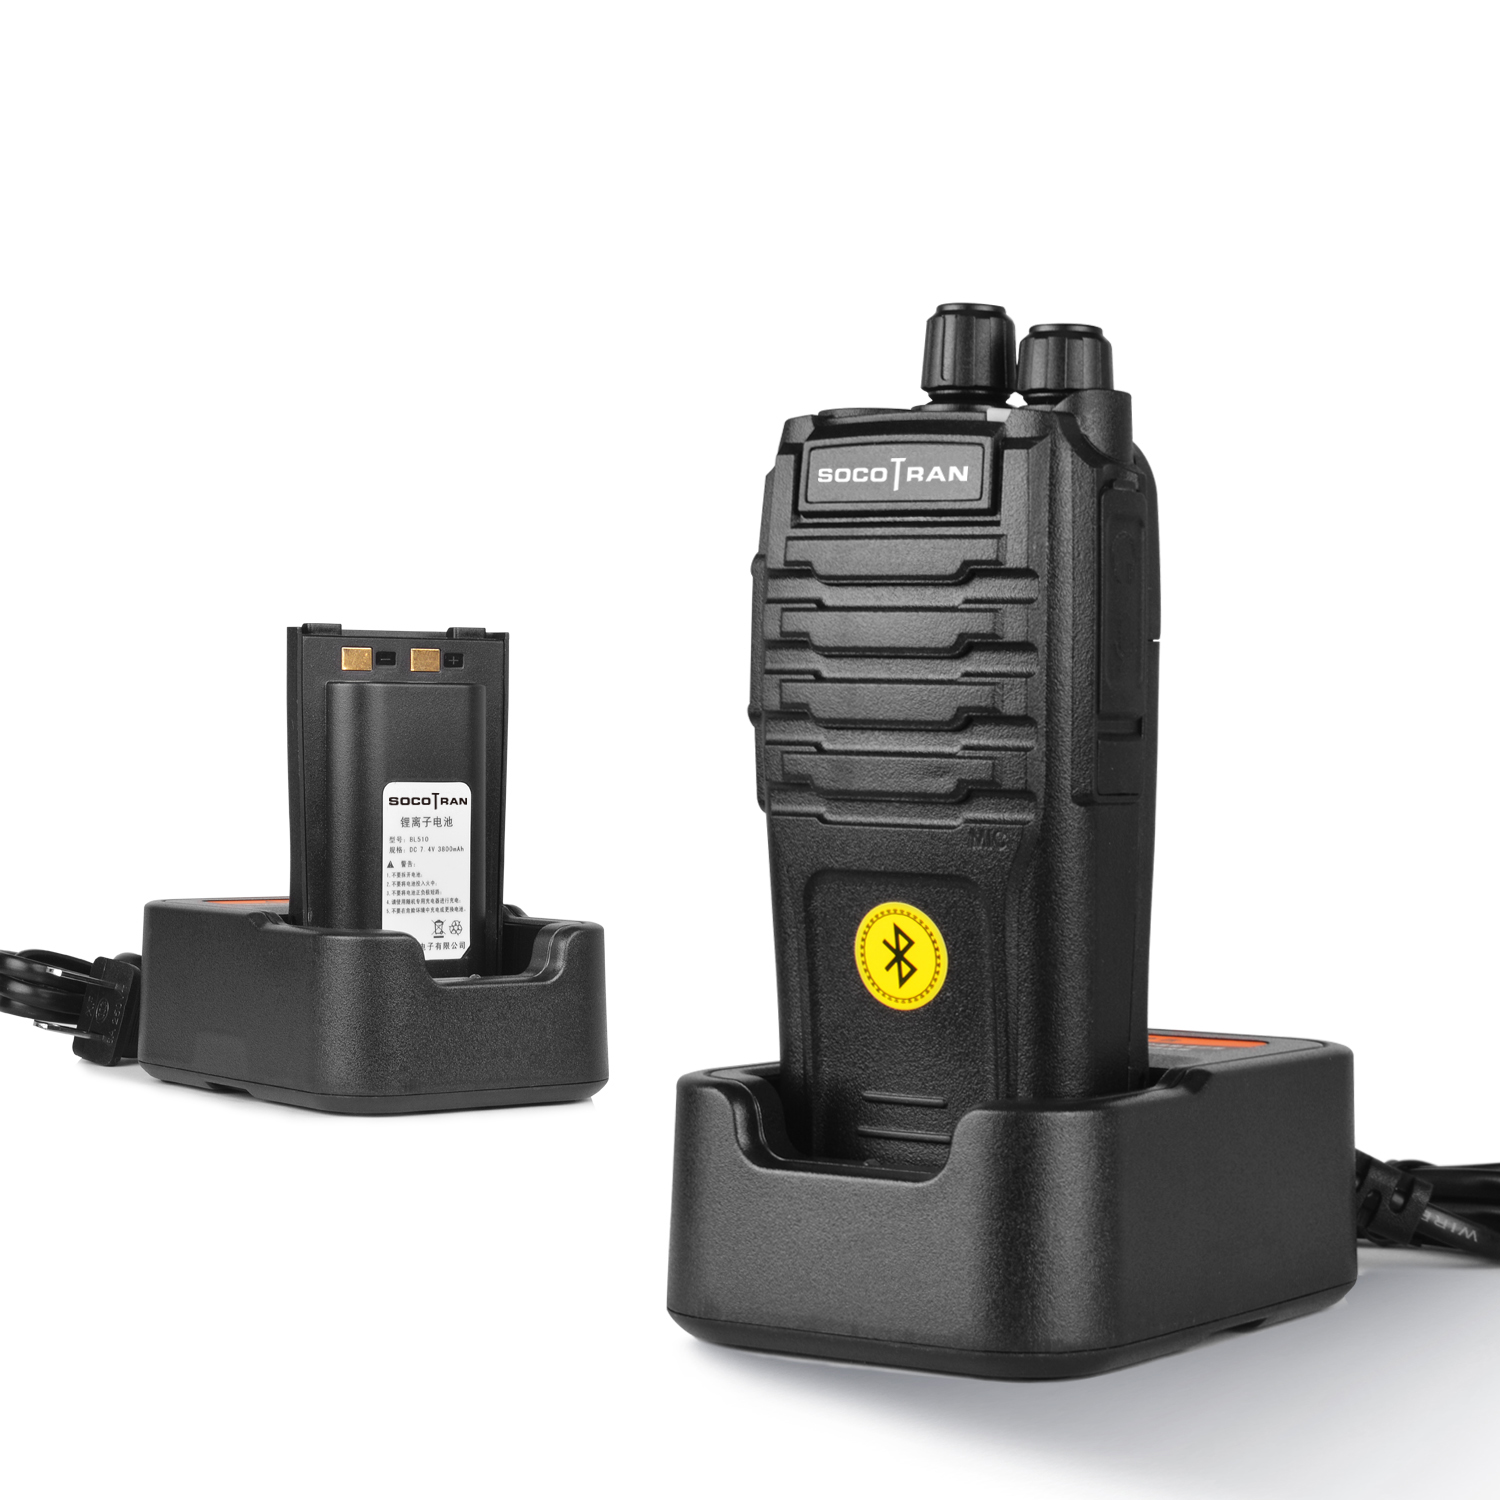 Bluetooth Walkie Talkie 5W UHF 400-480MHz Built-in Bluetooth